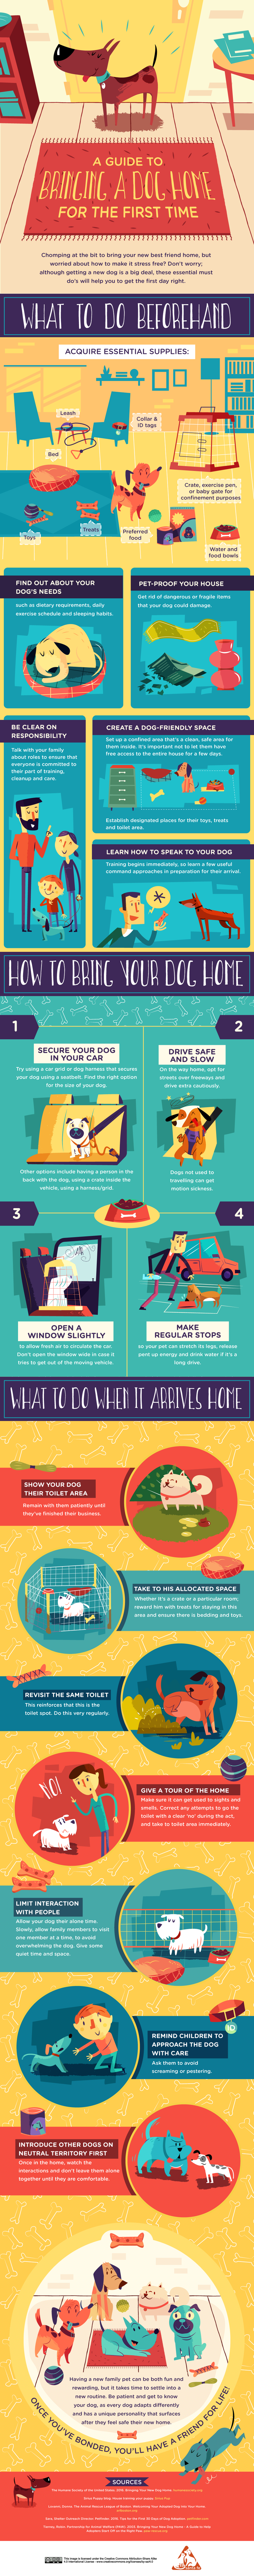 An infographic on what to do when you adopt a dog.